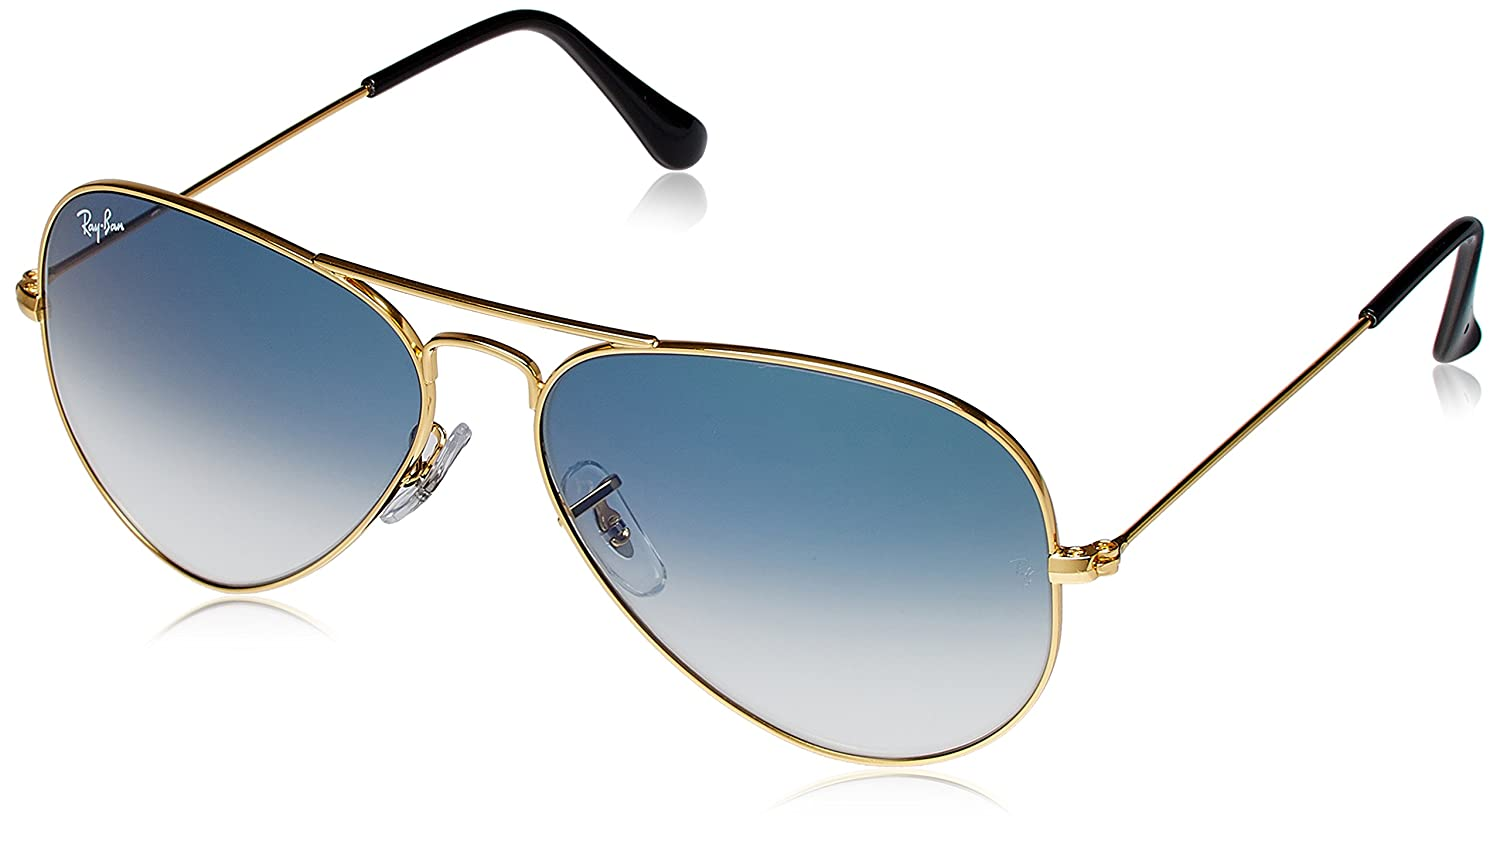 ad9ffe837e ray ban sunglasses at lowest price